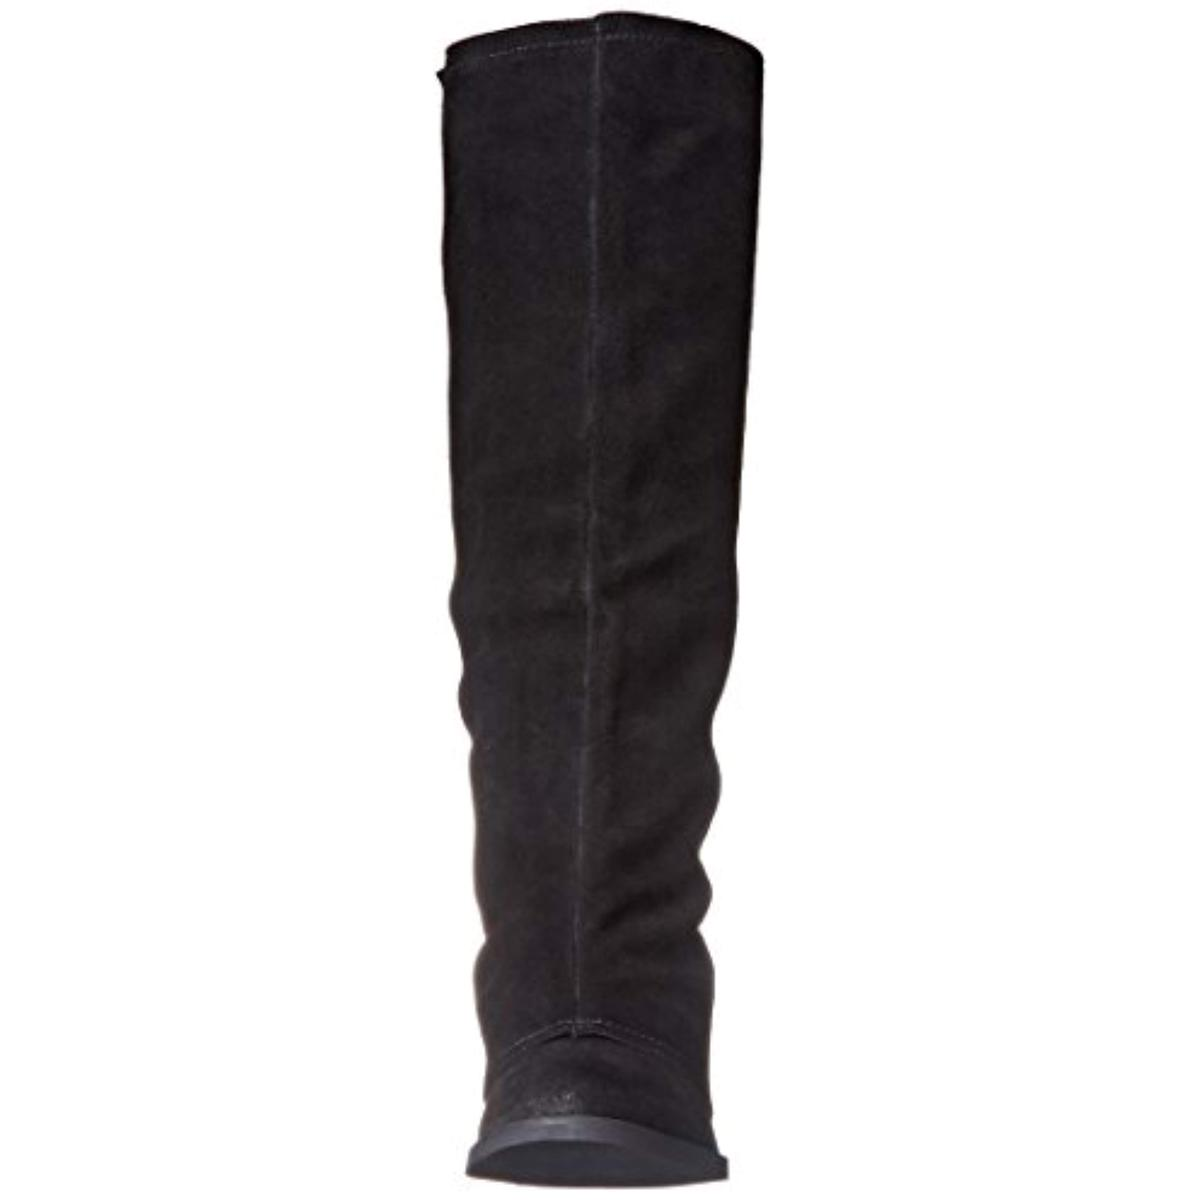 Naughty Monkey Damenschuhe Arctic Knee-High Solstice Suede Knee-High Arctic Stiefel Schuhes BHFO 3376 dd8e8f